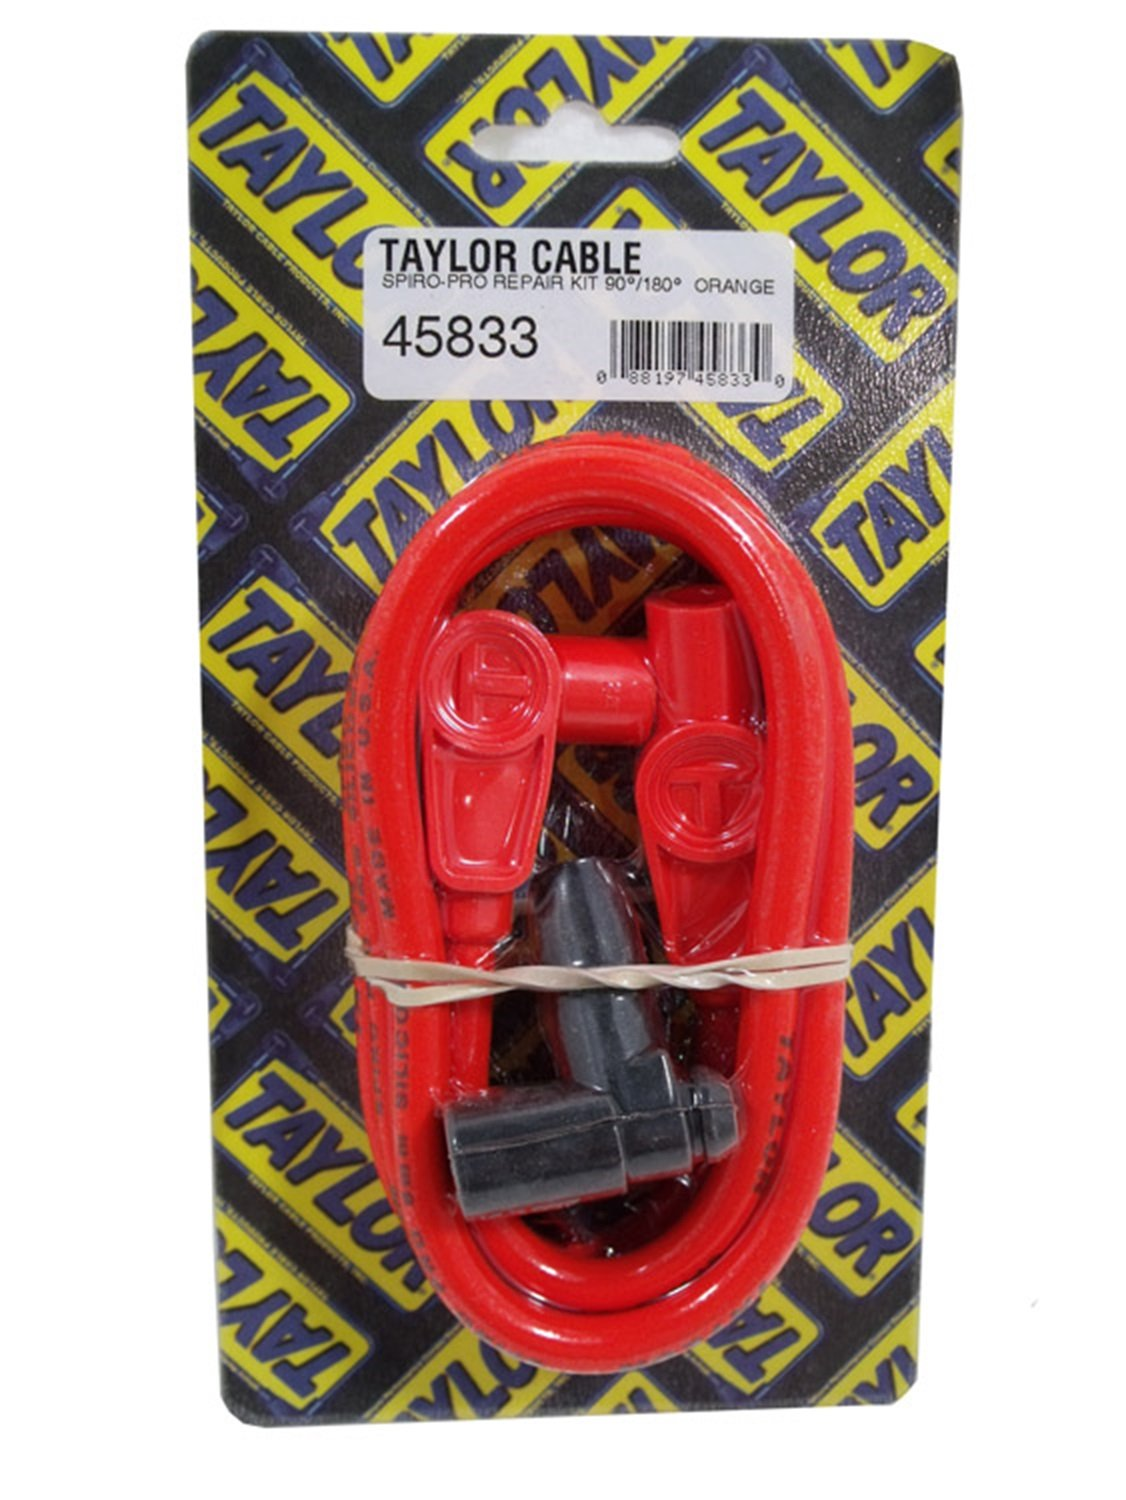 Taylor Cable 45833